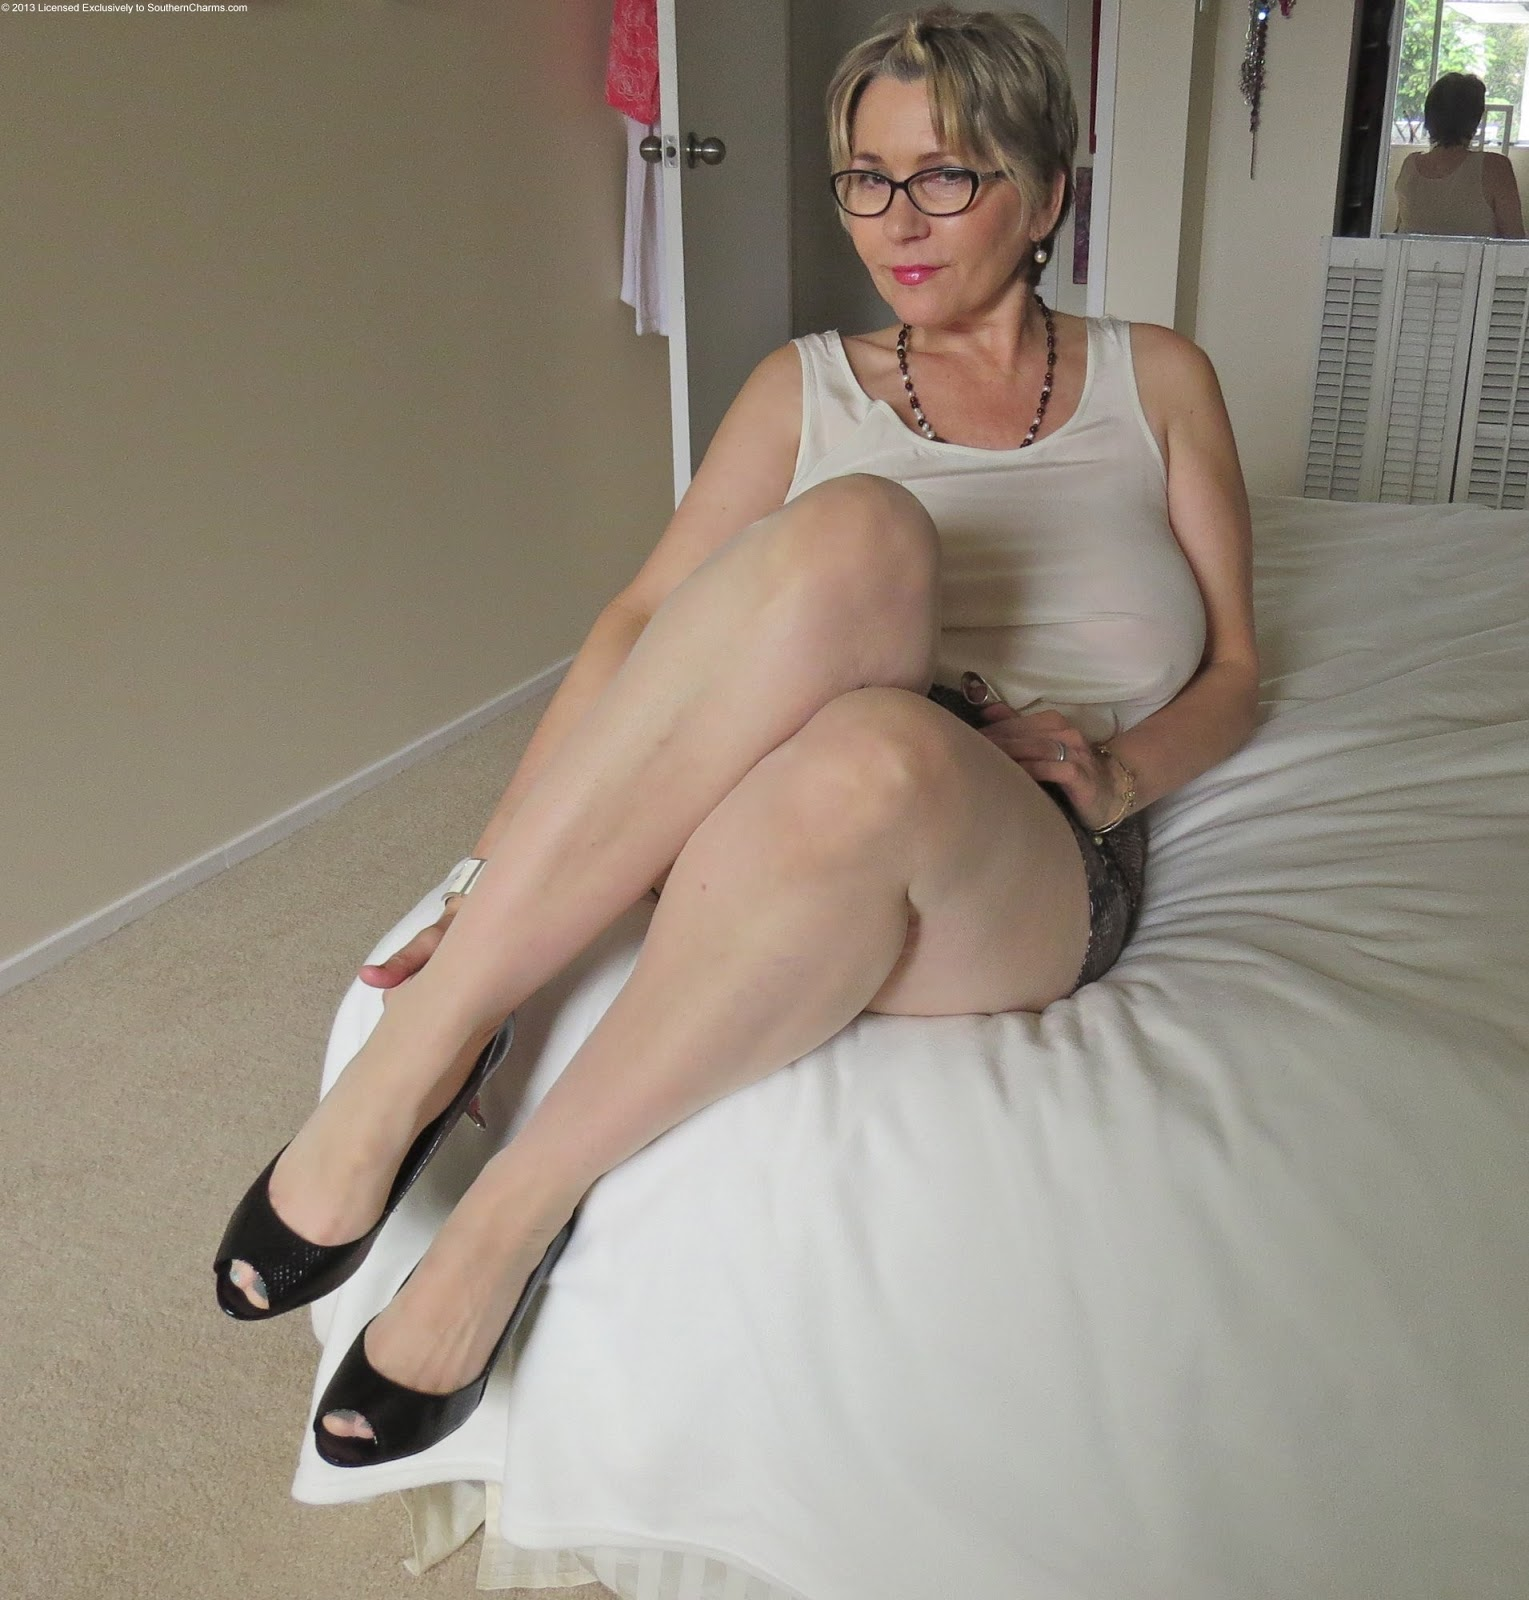 Southern charms amateur galleries pic 541